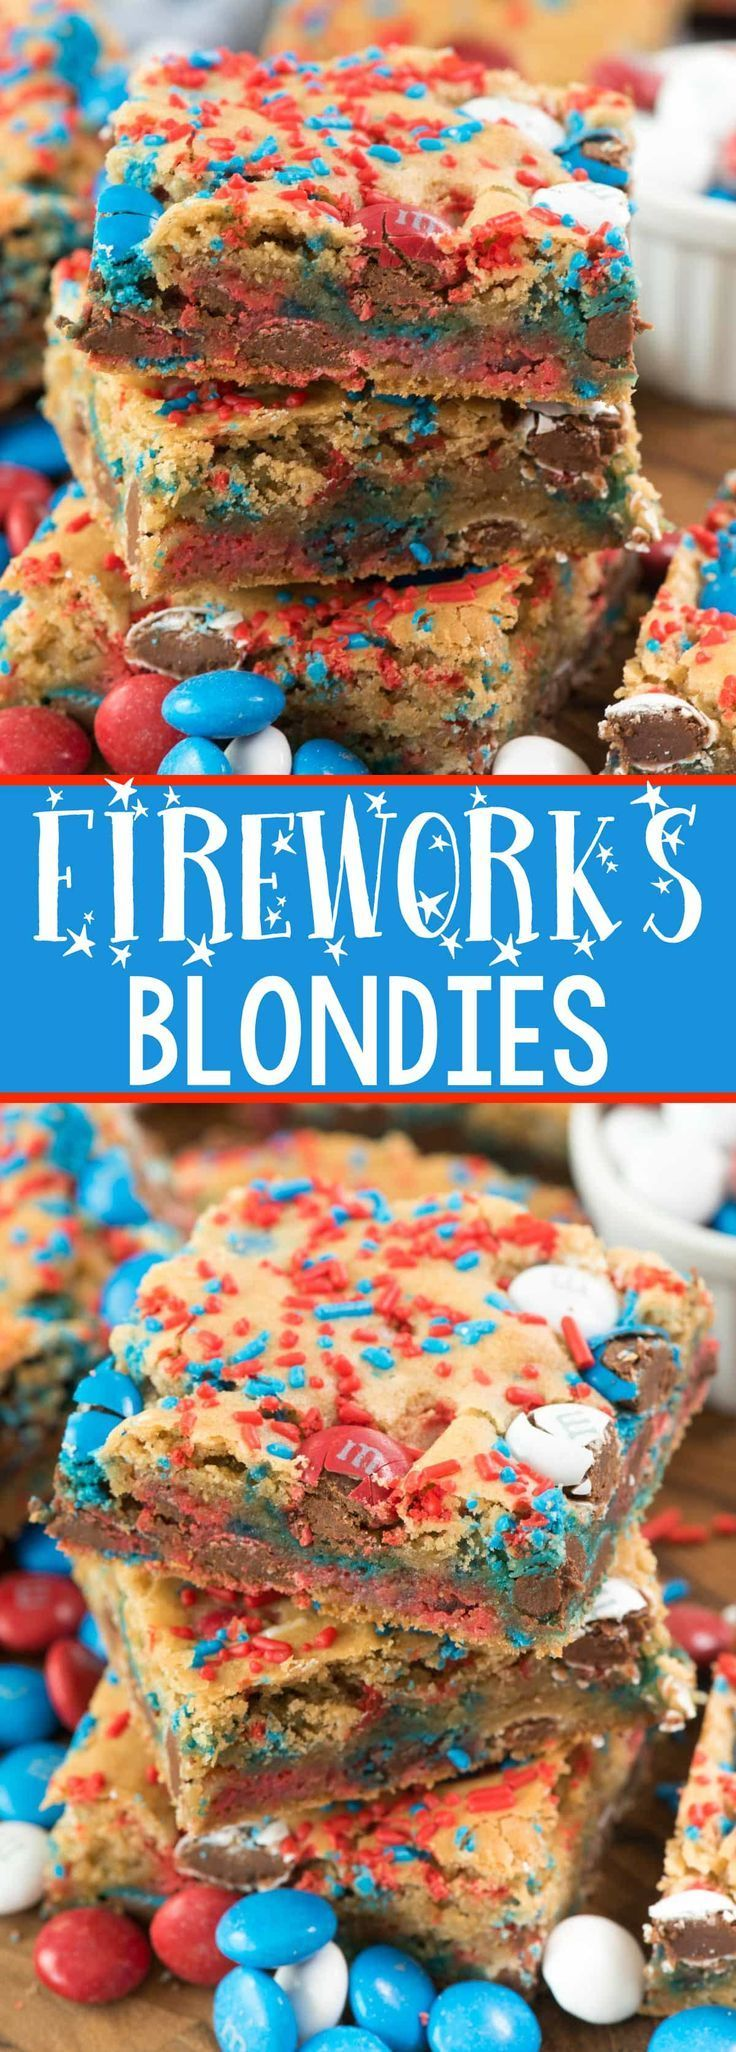 Fireworks Blondies - this EASY blondie recipe is the BEST EVER COOKIE BAR! It's so soft and perfect with any additions, but especially with 4th of July M